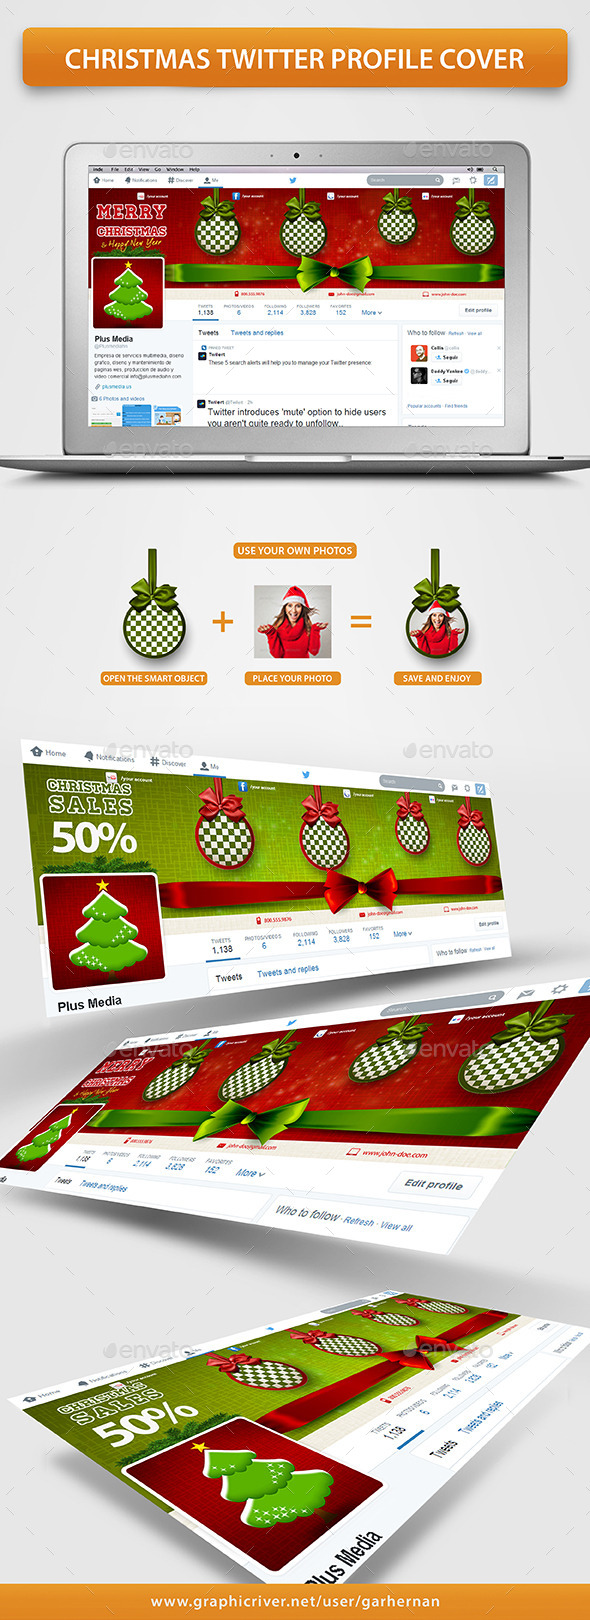 Christmas Twitter Profile Cover - Twitter Social Media